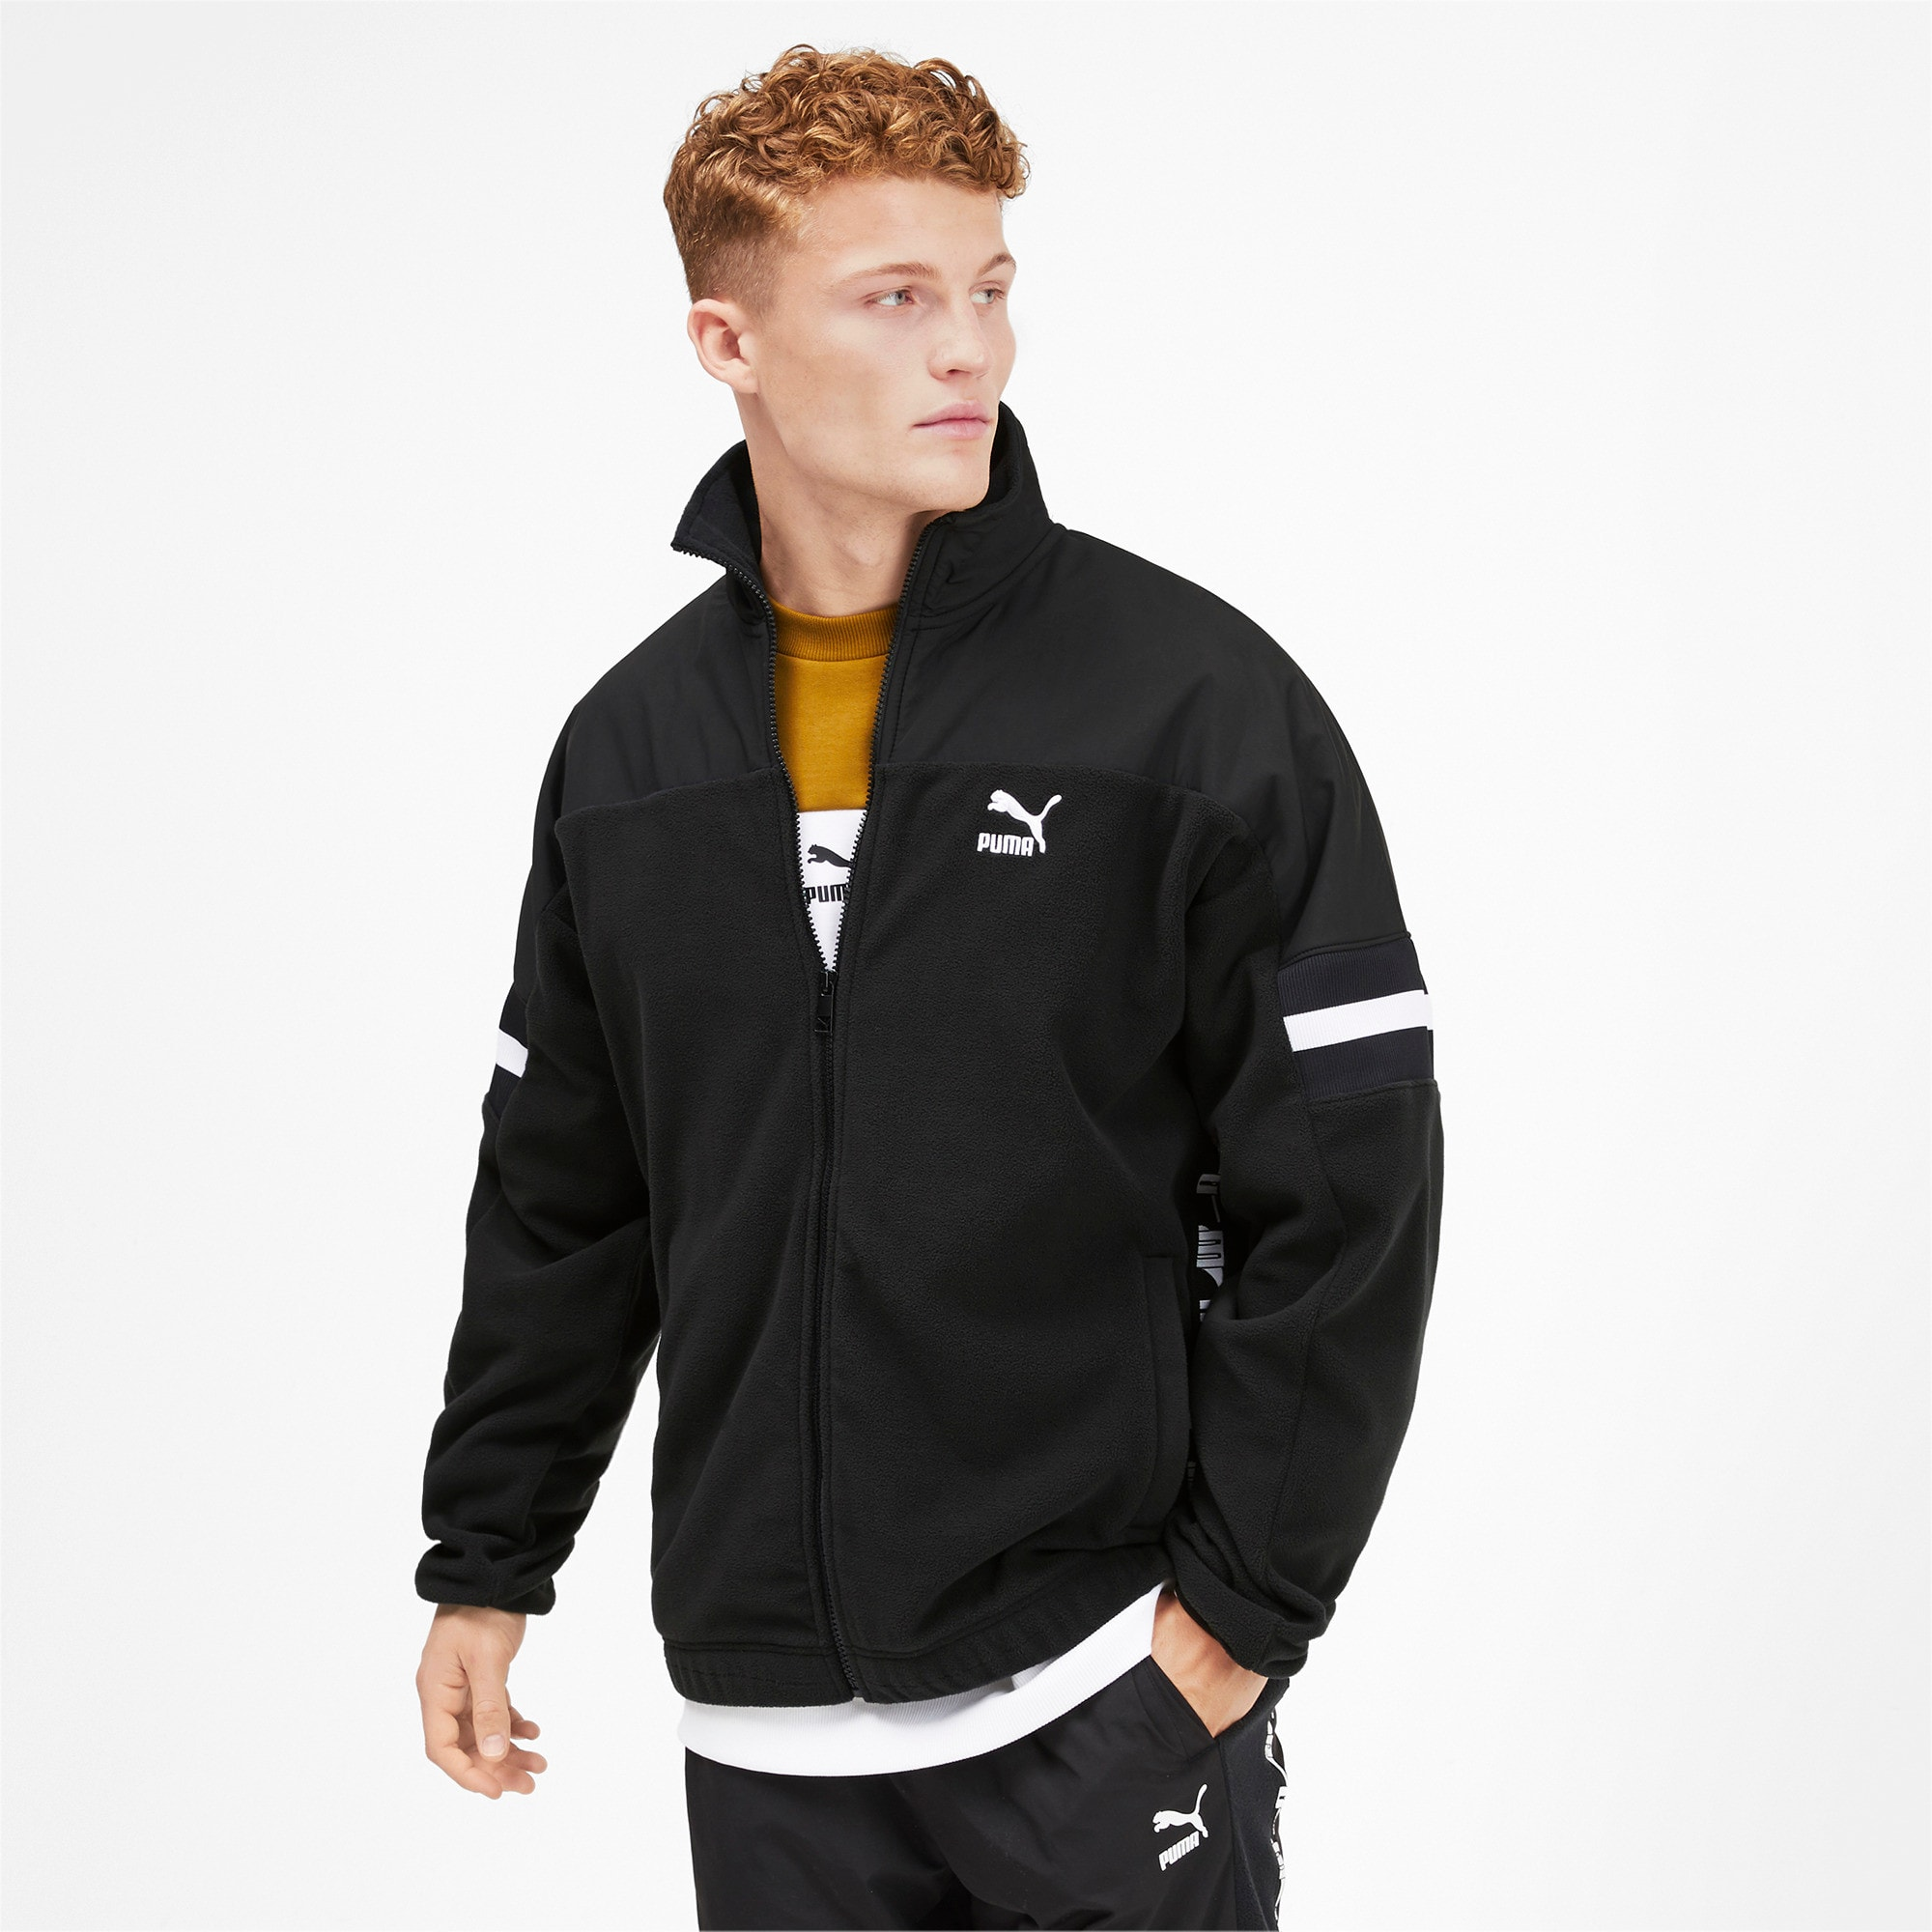 Thumbnail 2 of PUMA XTG Woven Men's Track Jacket, Puma Black, medium